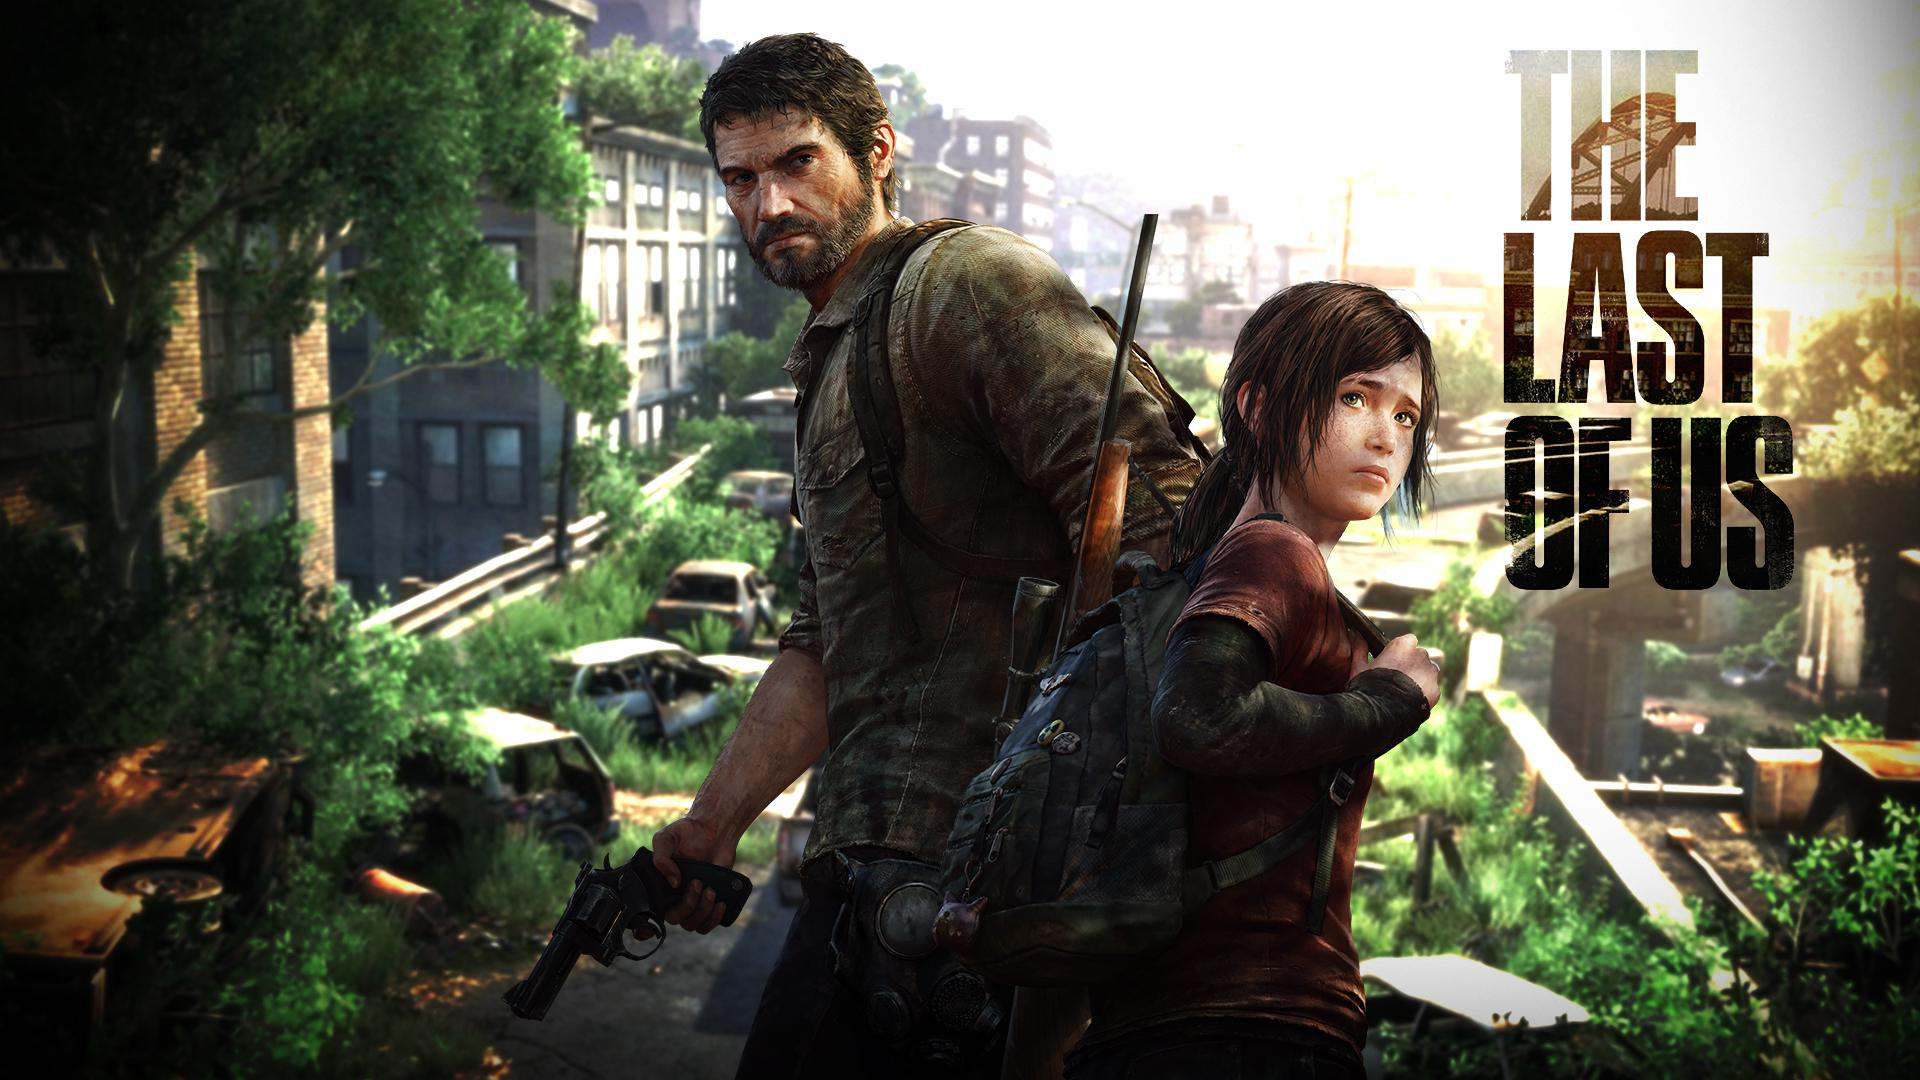 The-Last-of-Us-Wallpaper-09-1920×1200